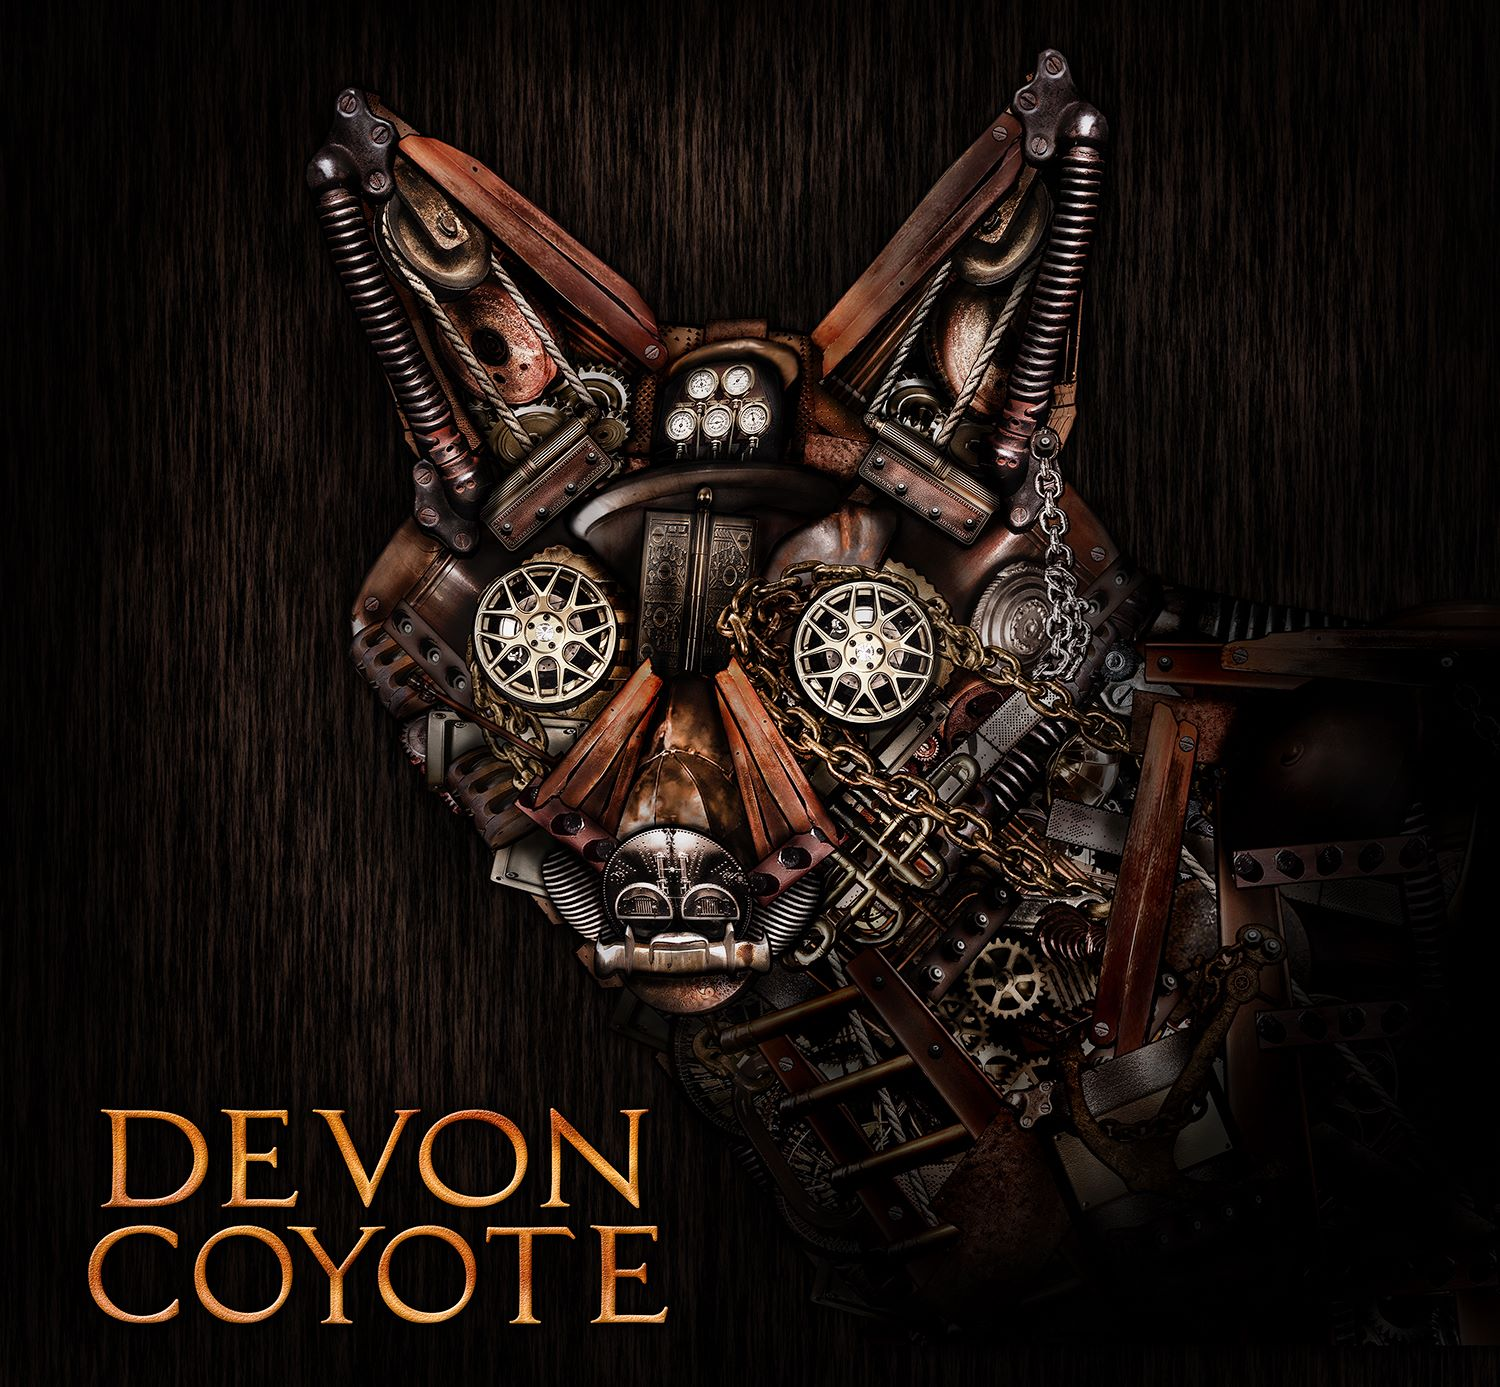 Steampunk Devon Coyote.jpg